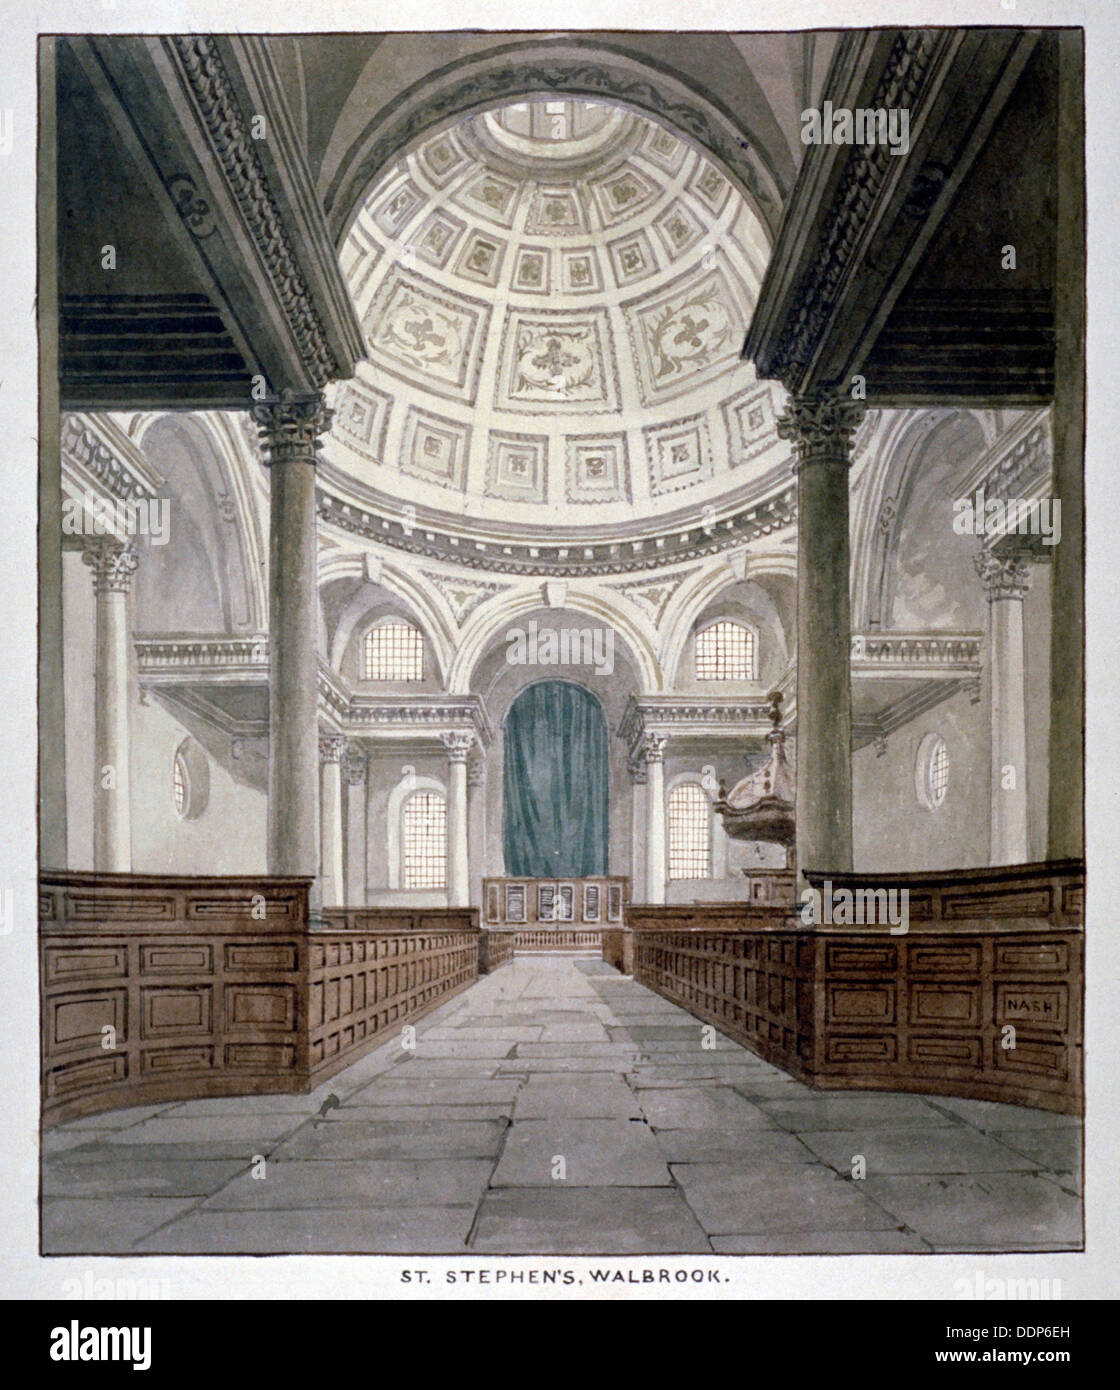 Church Of St Stephen Walbrook, City Of London, C1840. Artist: Frederick Nash